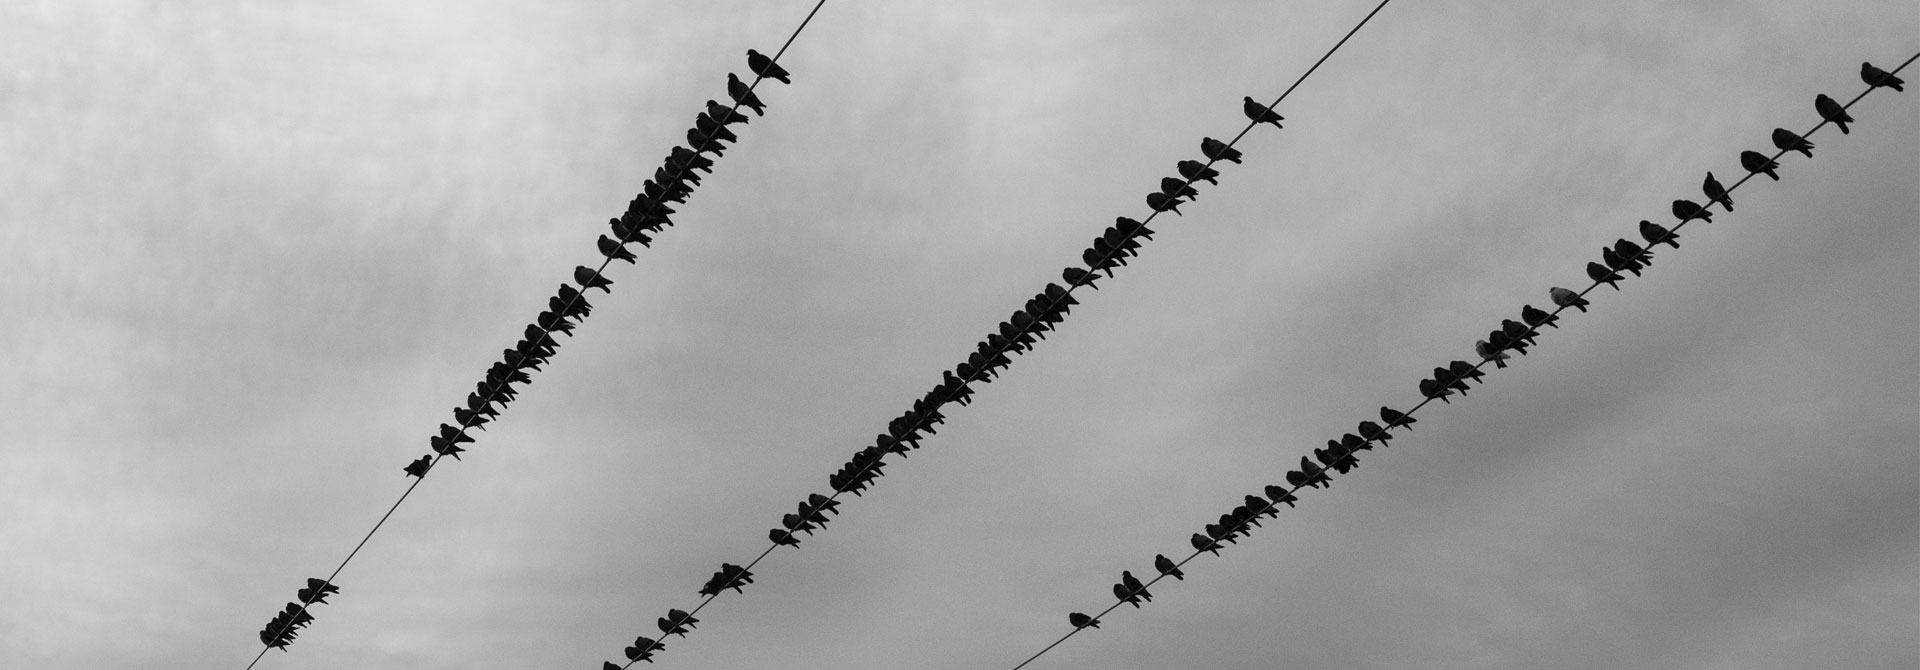 Crows lined up on telephone wire. Photo by Alex Jones, Unsplash